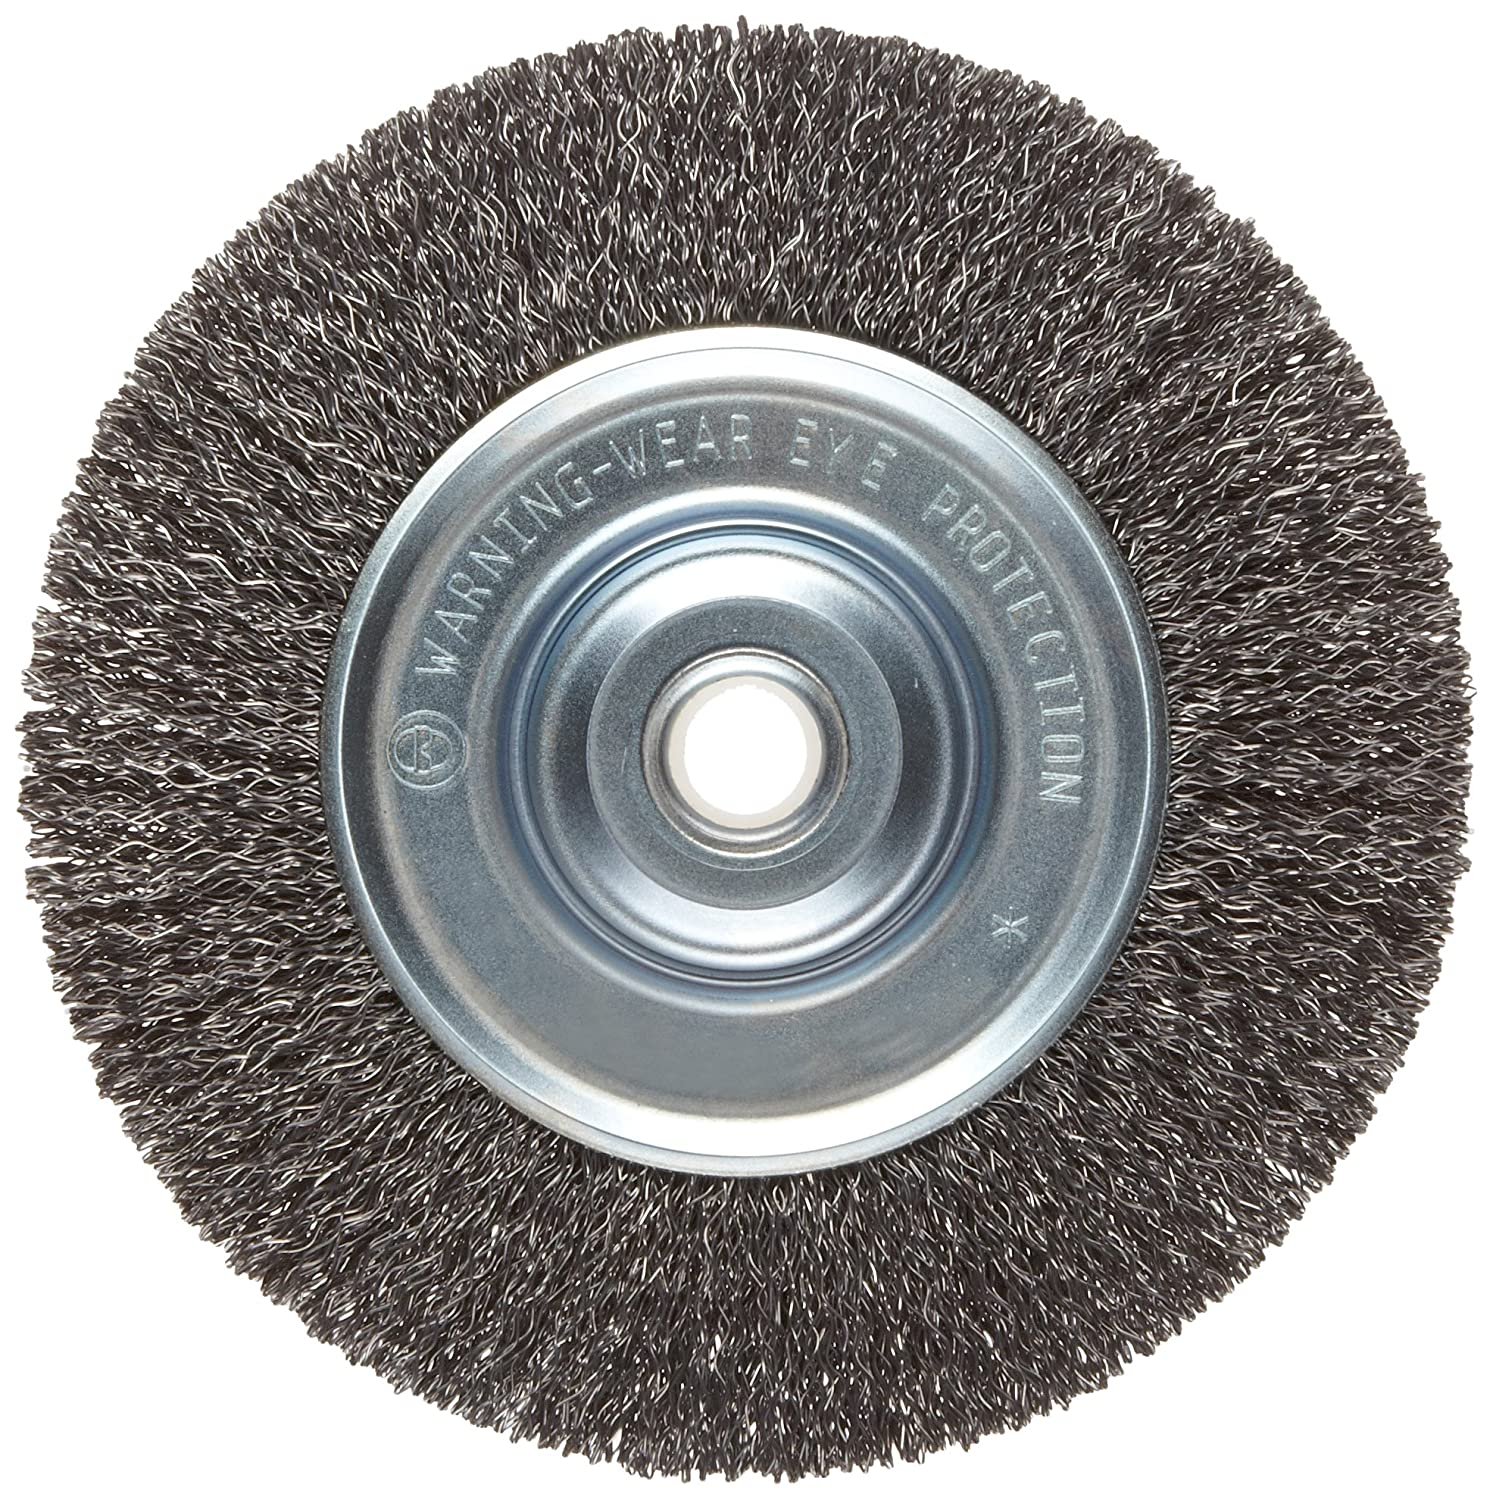 2 Wire Wheel Brush Center Free Body Diagrams Jordan39s Projects Weiler Vortec Pro Medium Face Round Hole Carbon Rh Amazon Com